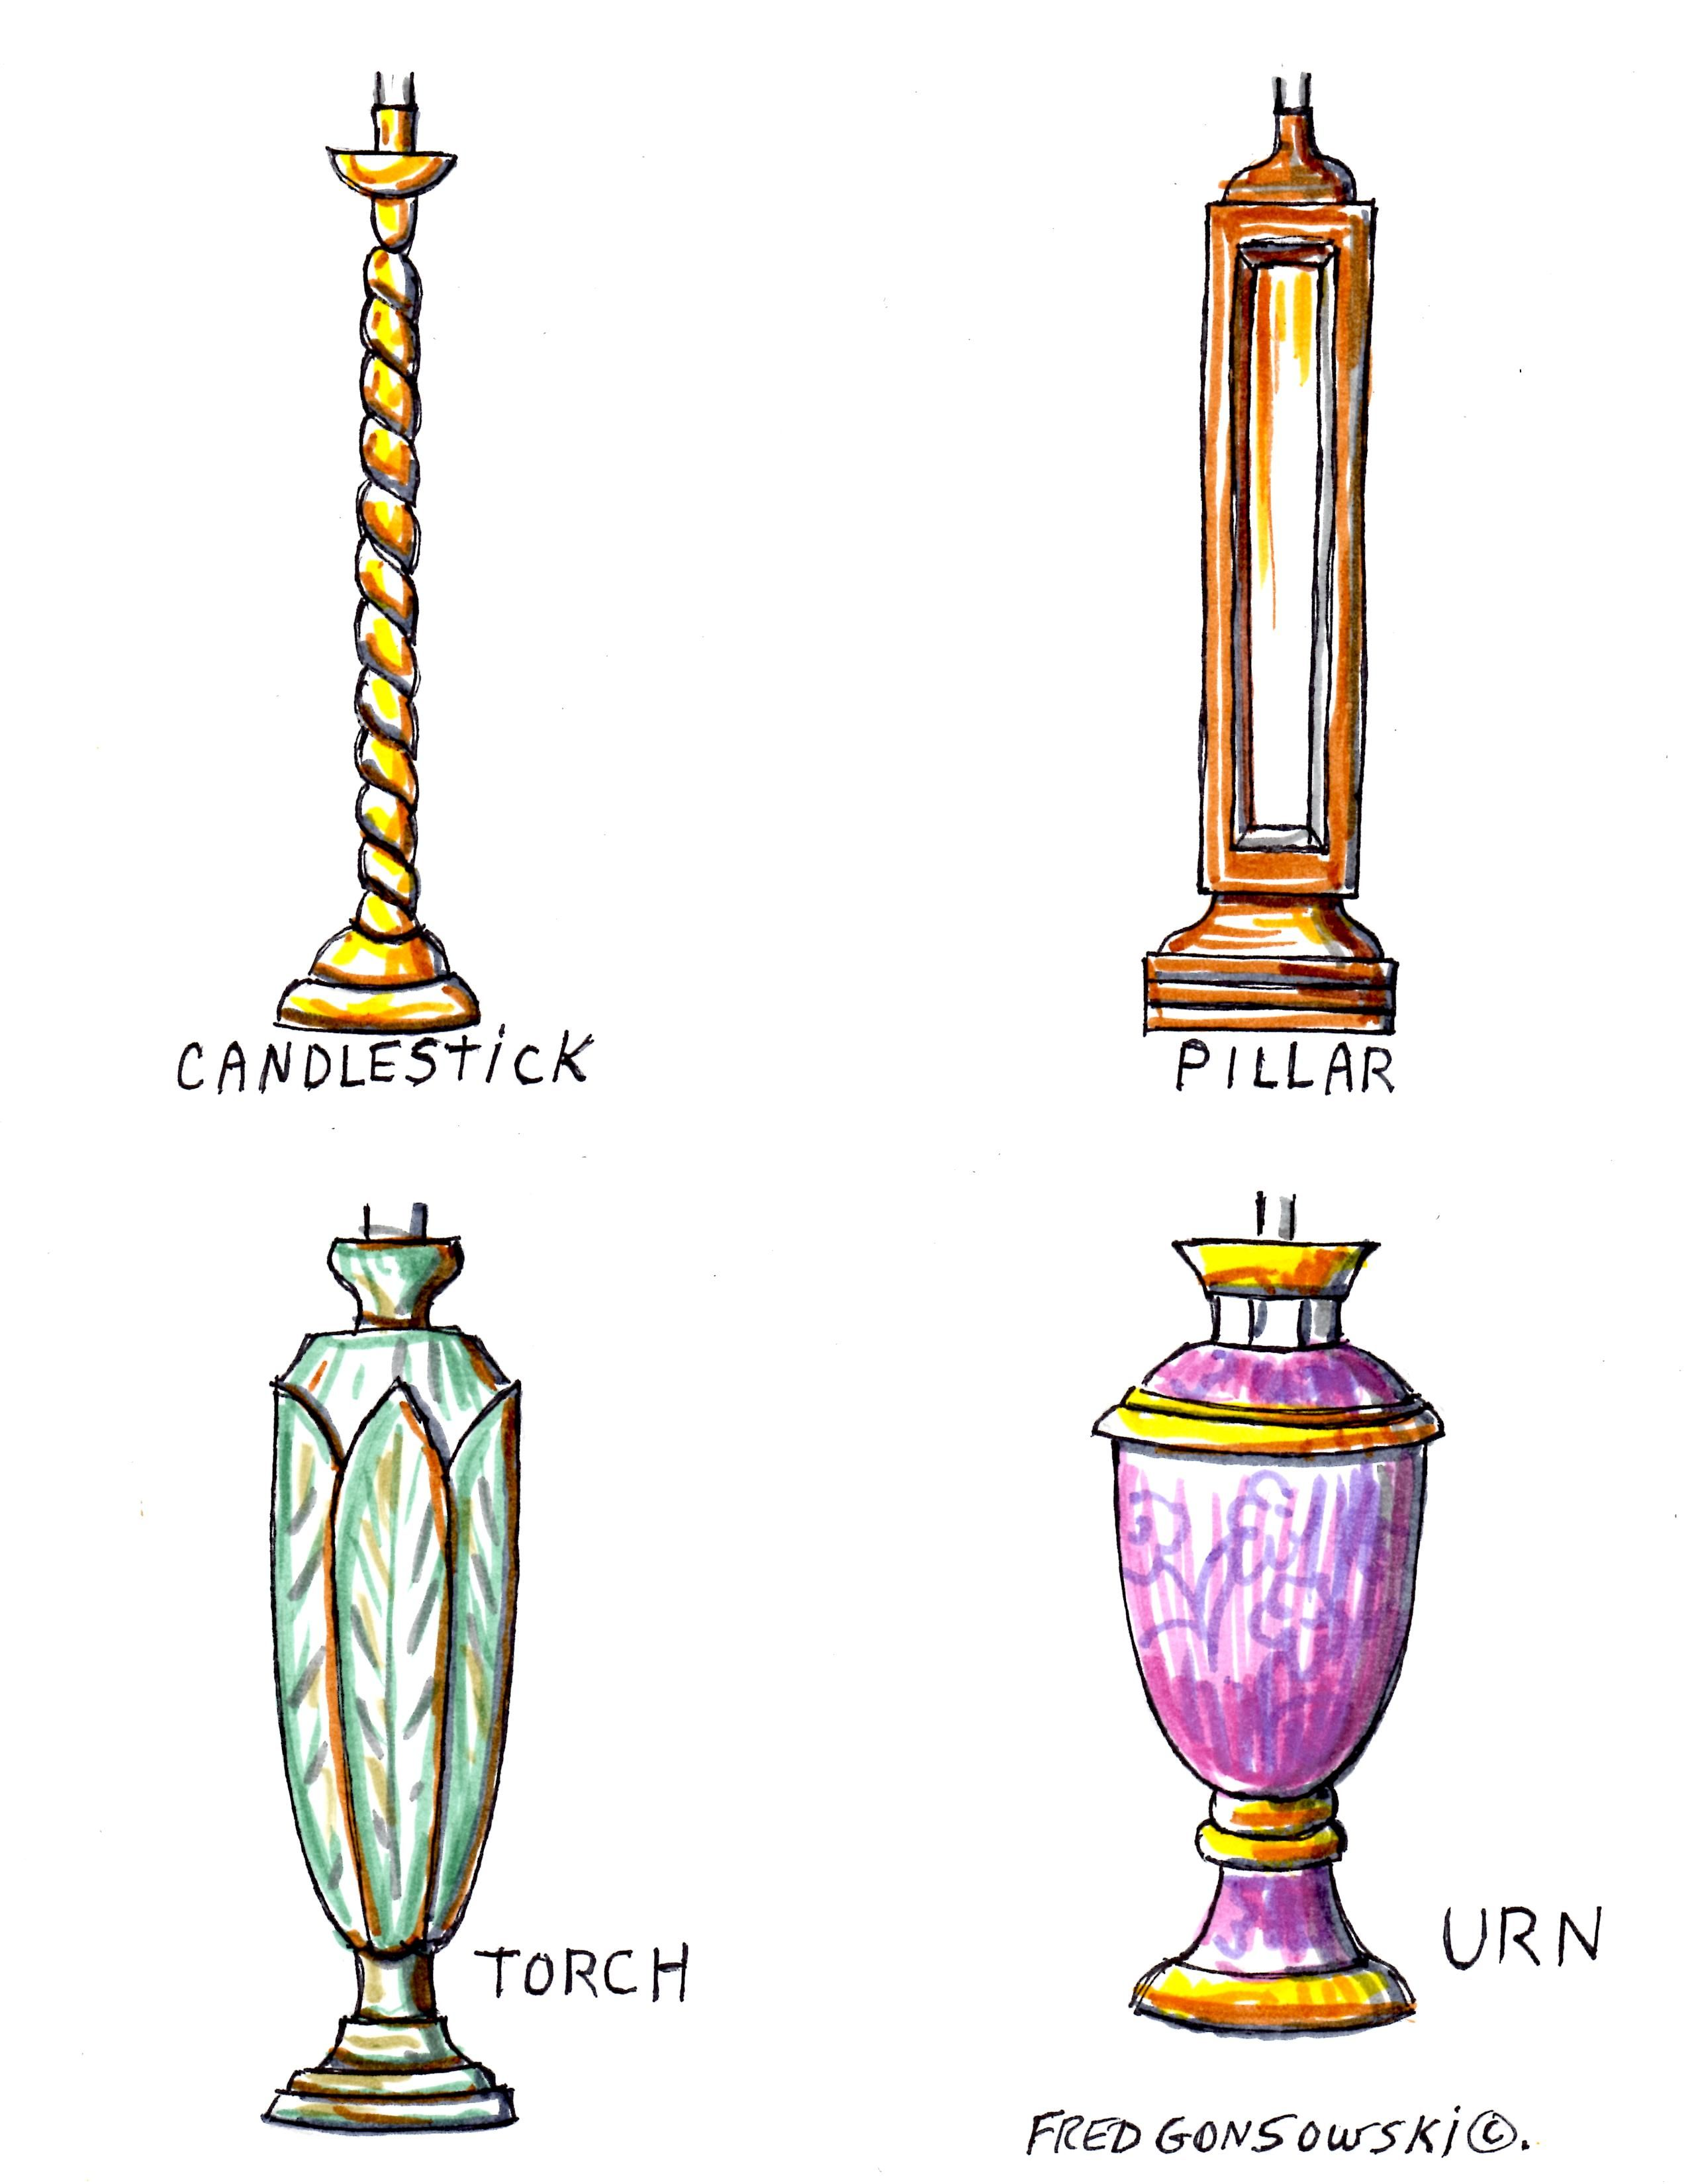 When It Comes To Looking At Different Styles Of Lamps The Two